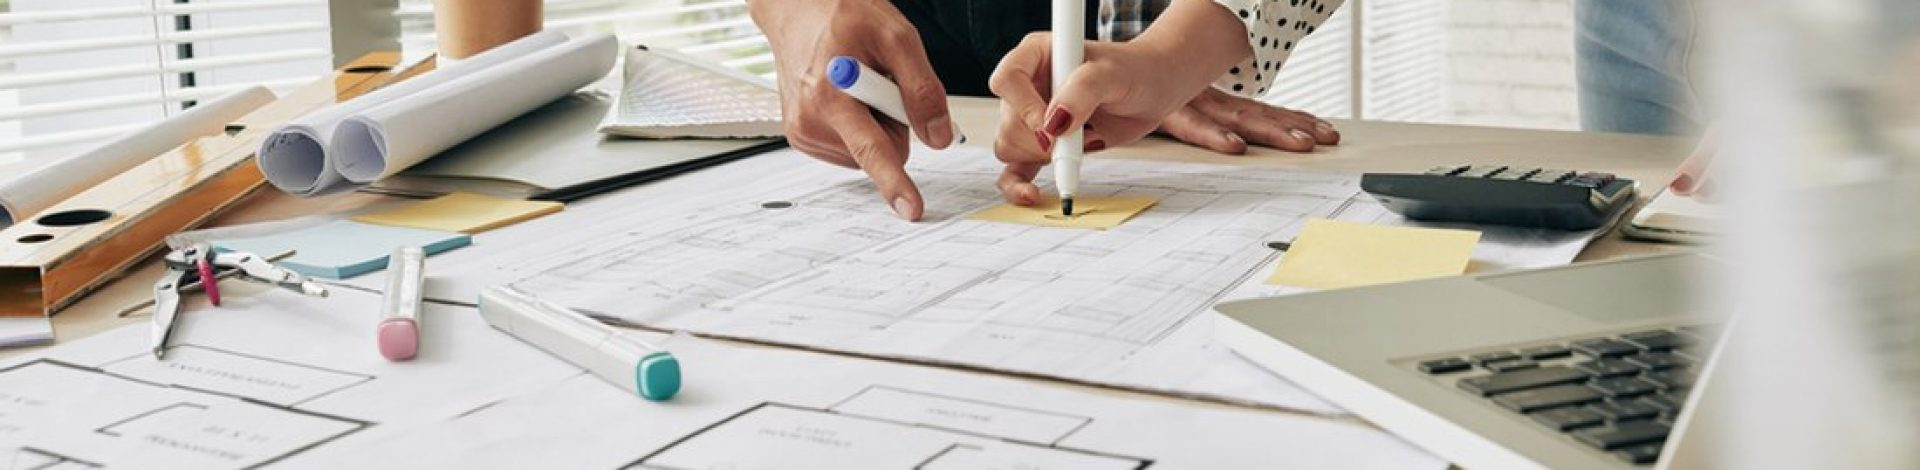 Close-up image of architects working on building blueprint